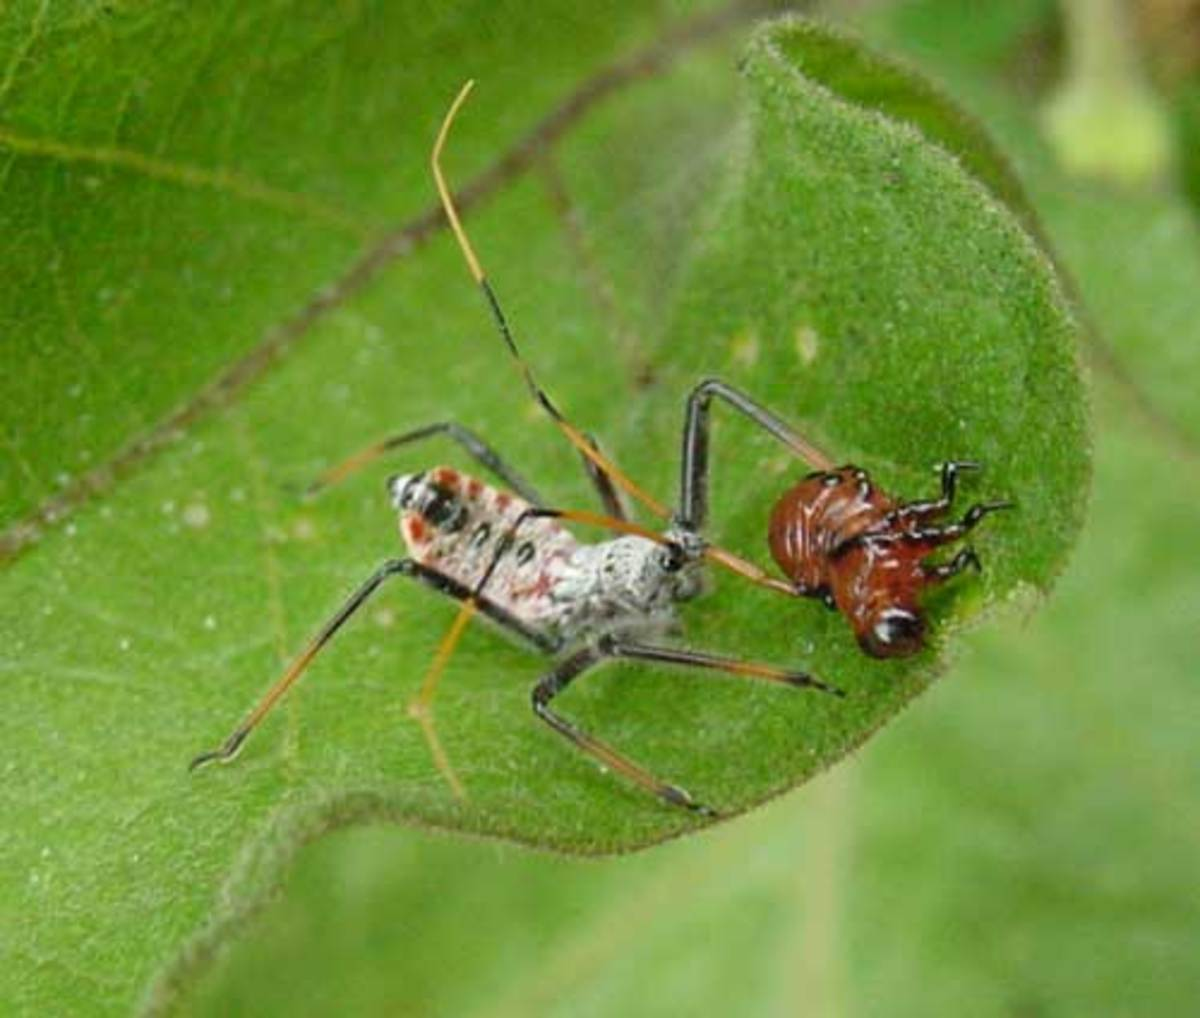 An assassin bug nymph feeds on a potato bug. Because the assassin bug undergoes a simple metamorphosis, nymphs and adults look very much alike.